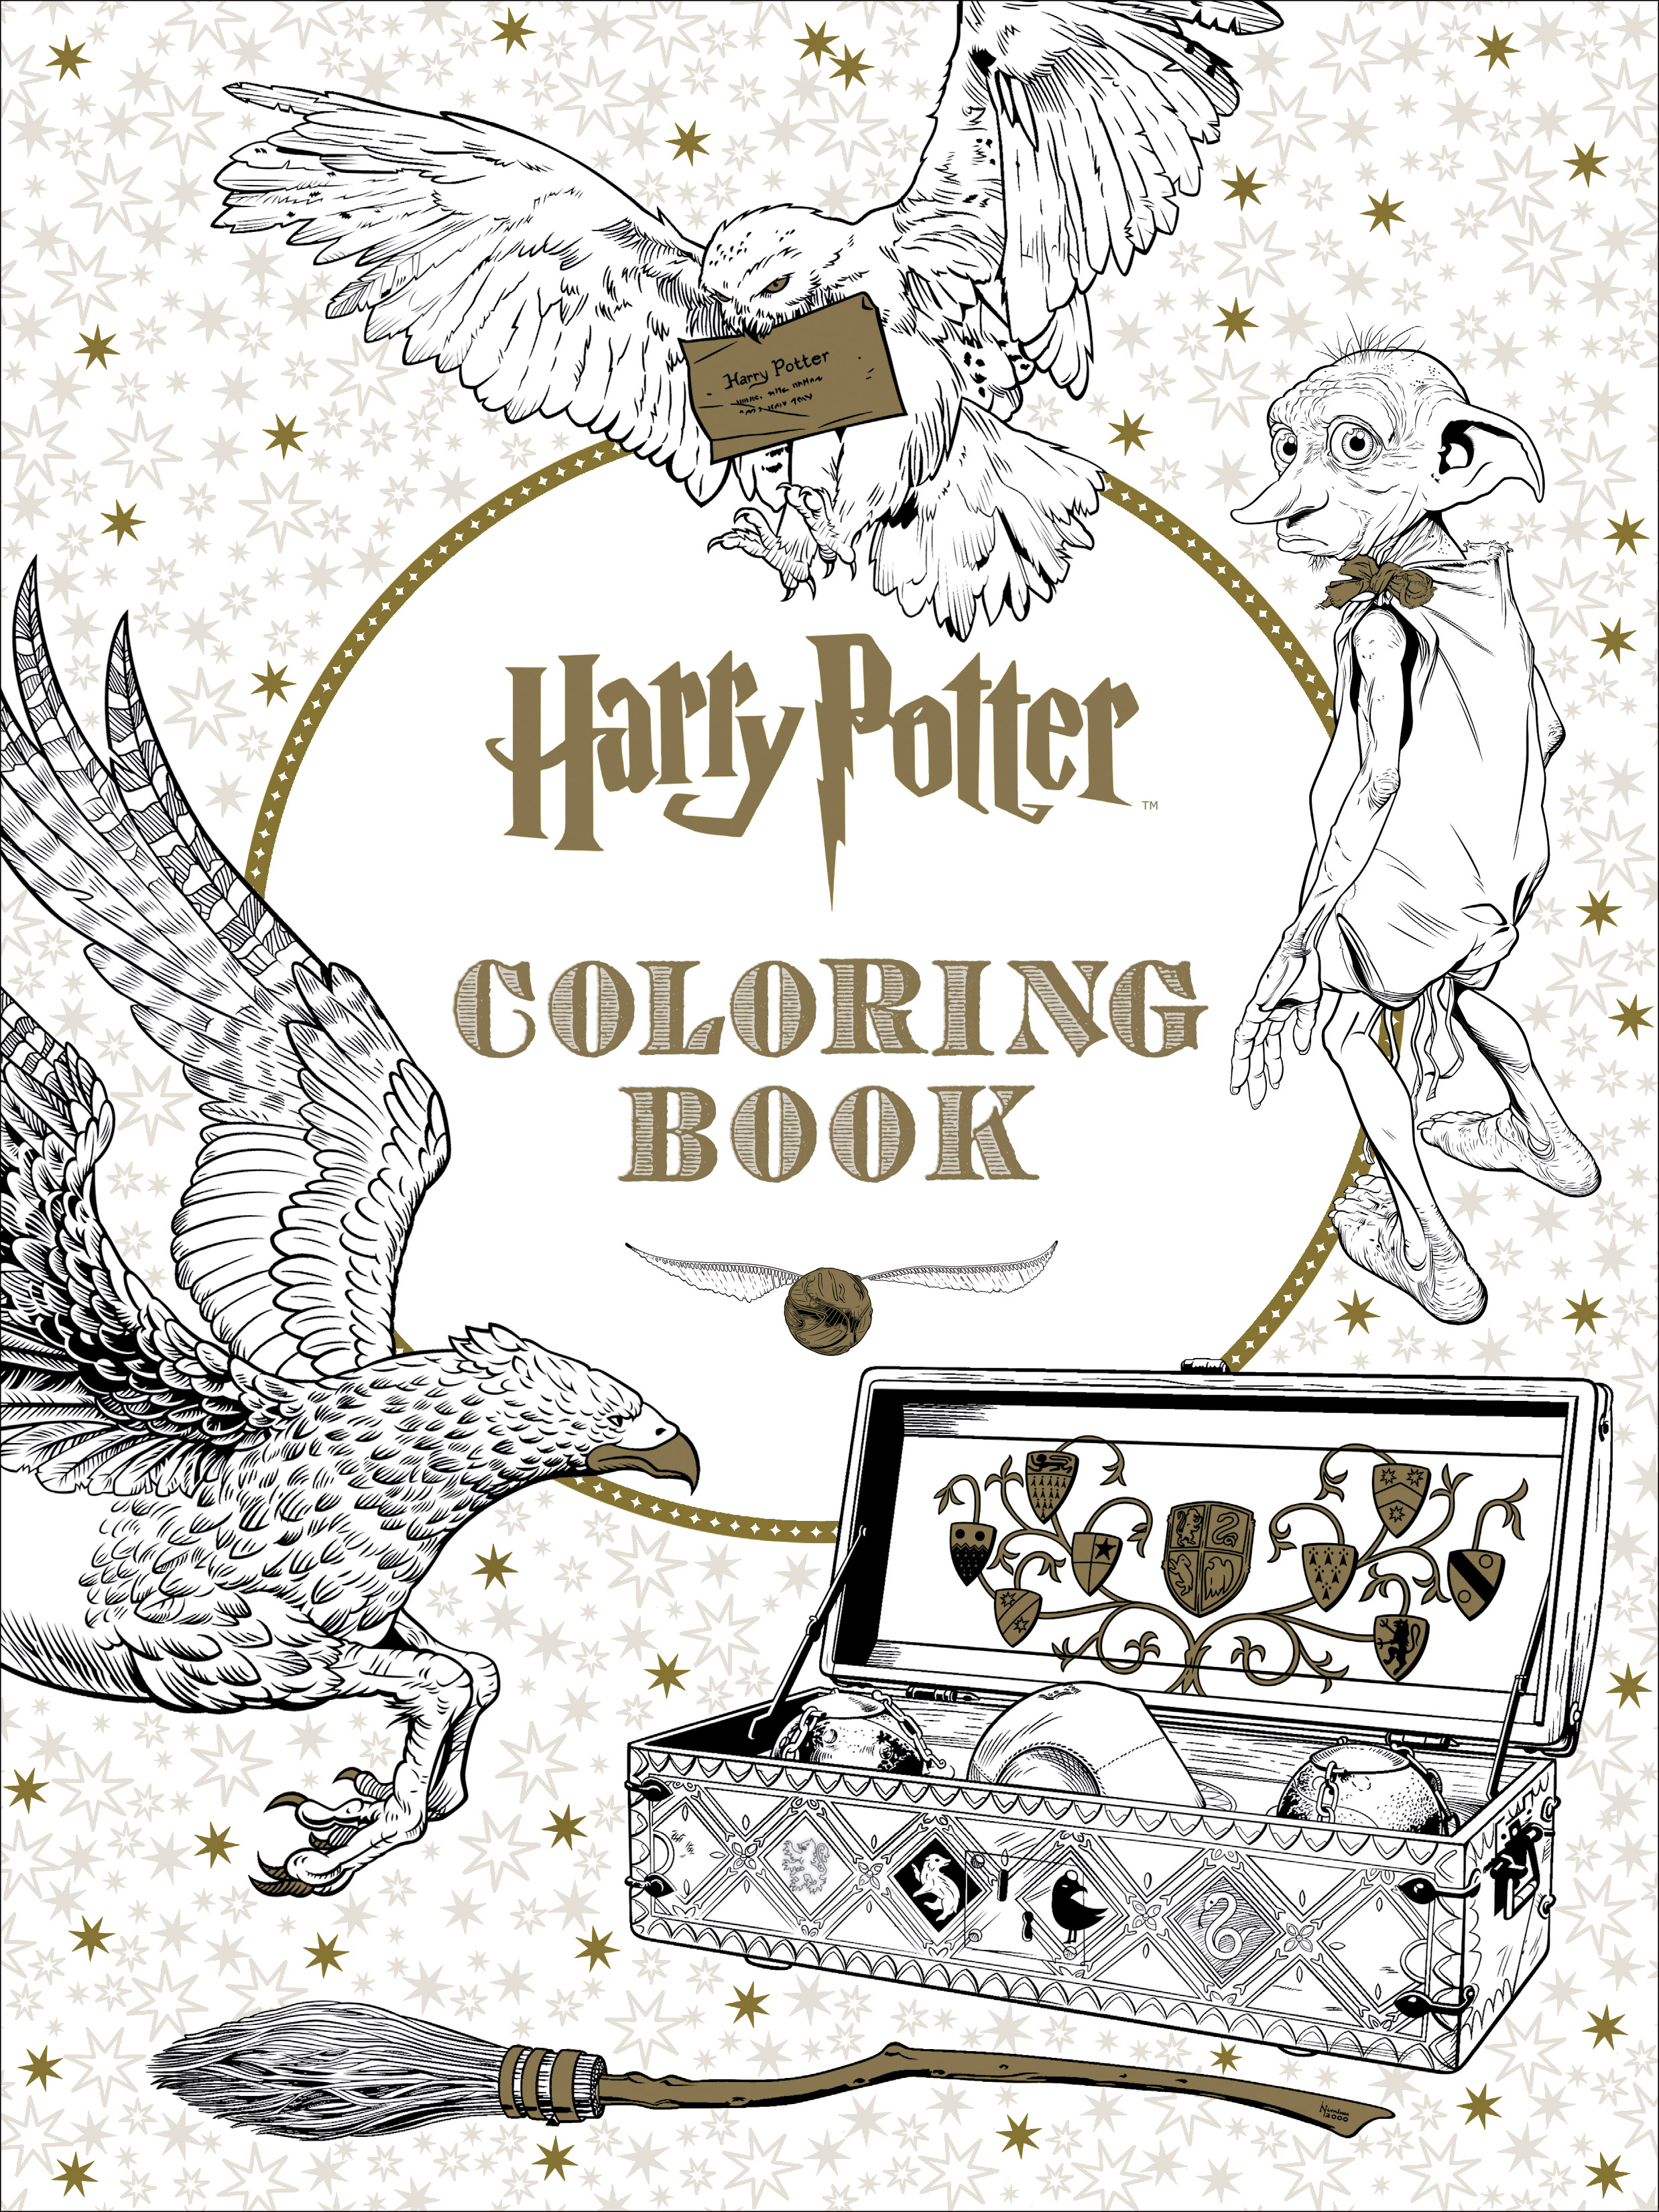 Harry Potter Characters And Places Coloring Book Walmart Muggle